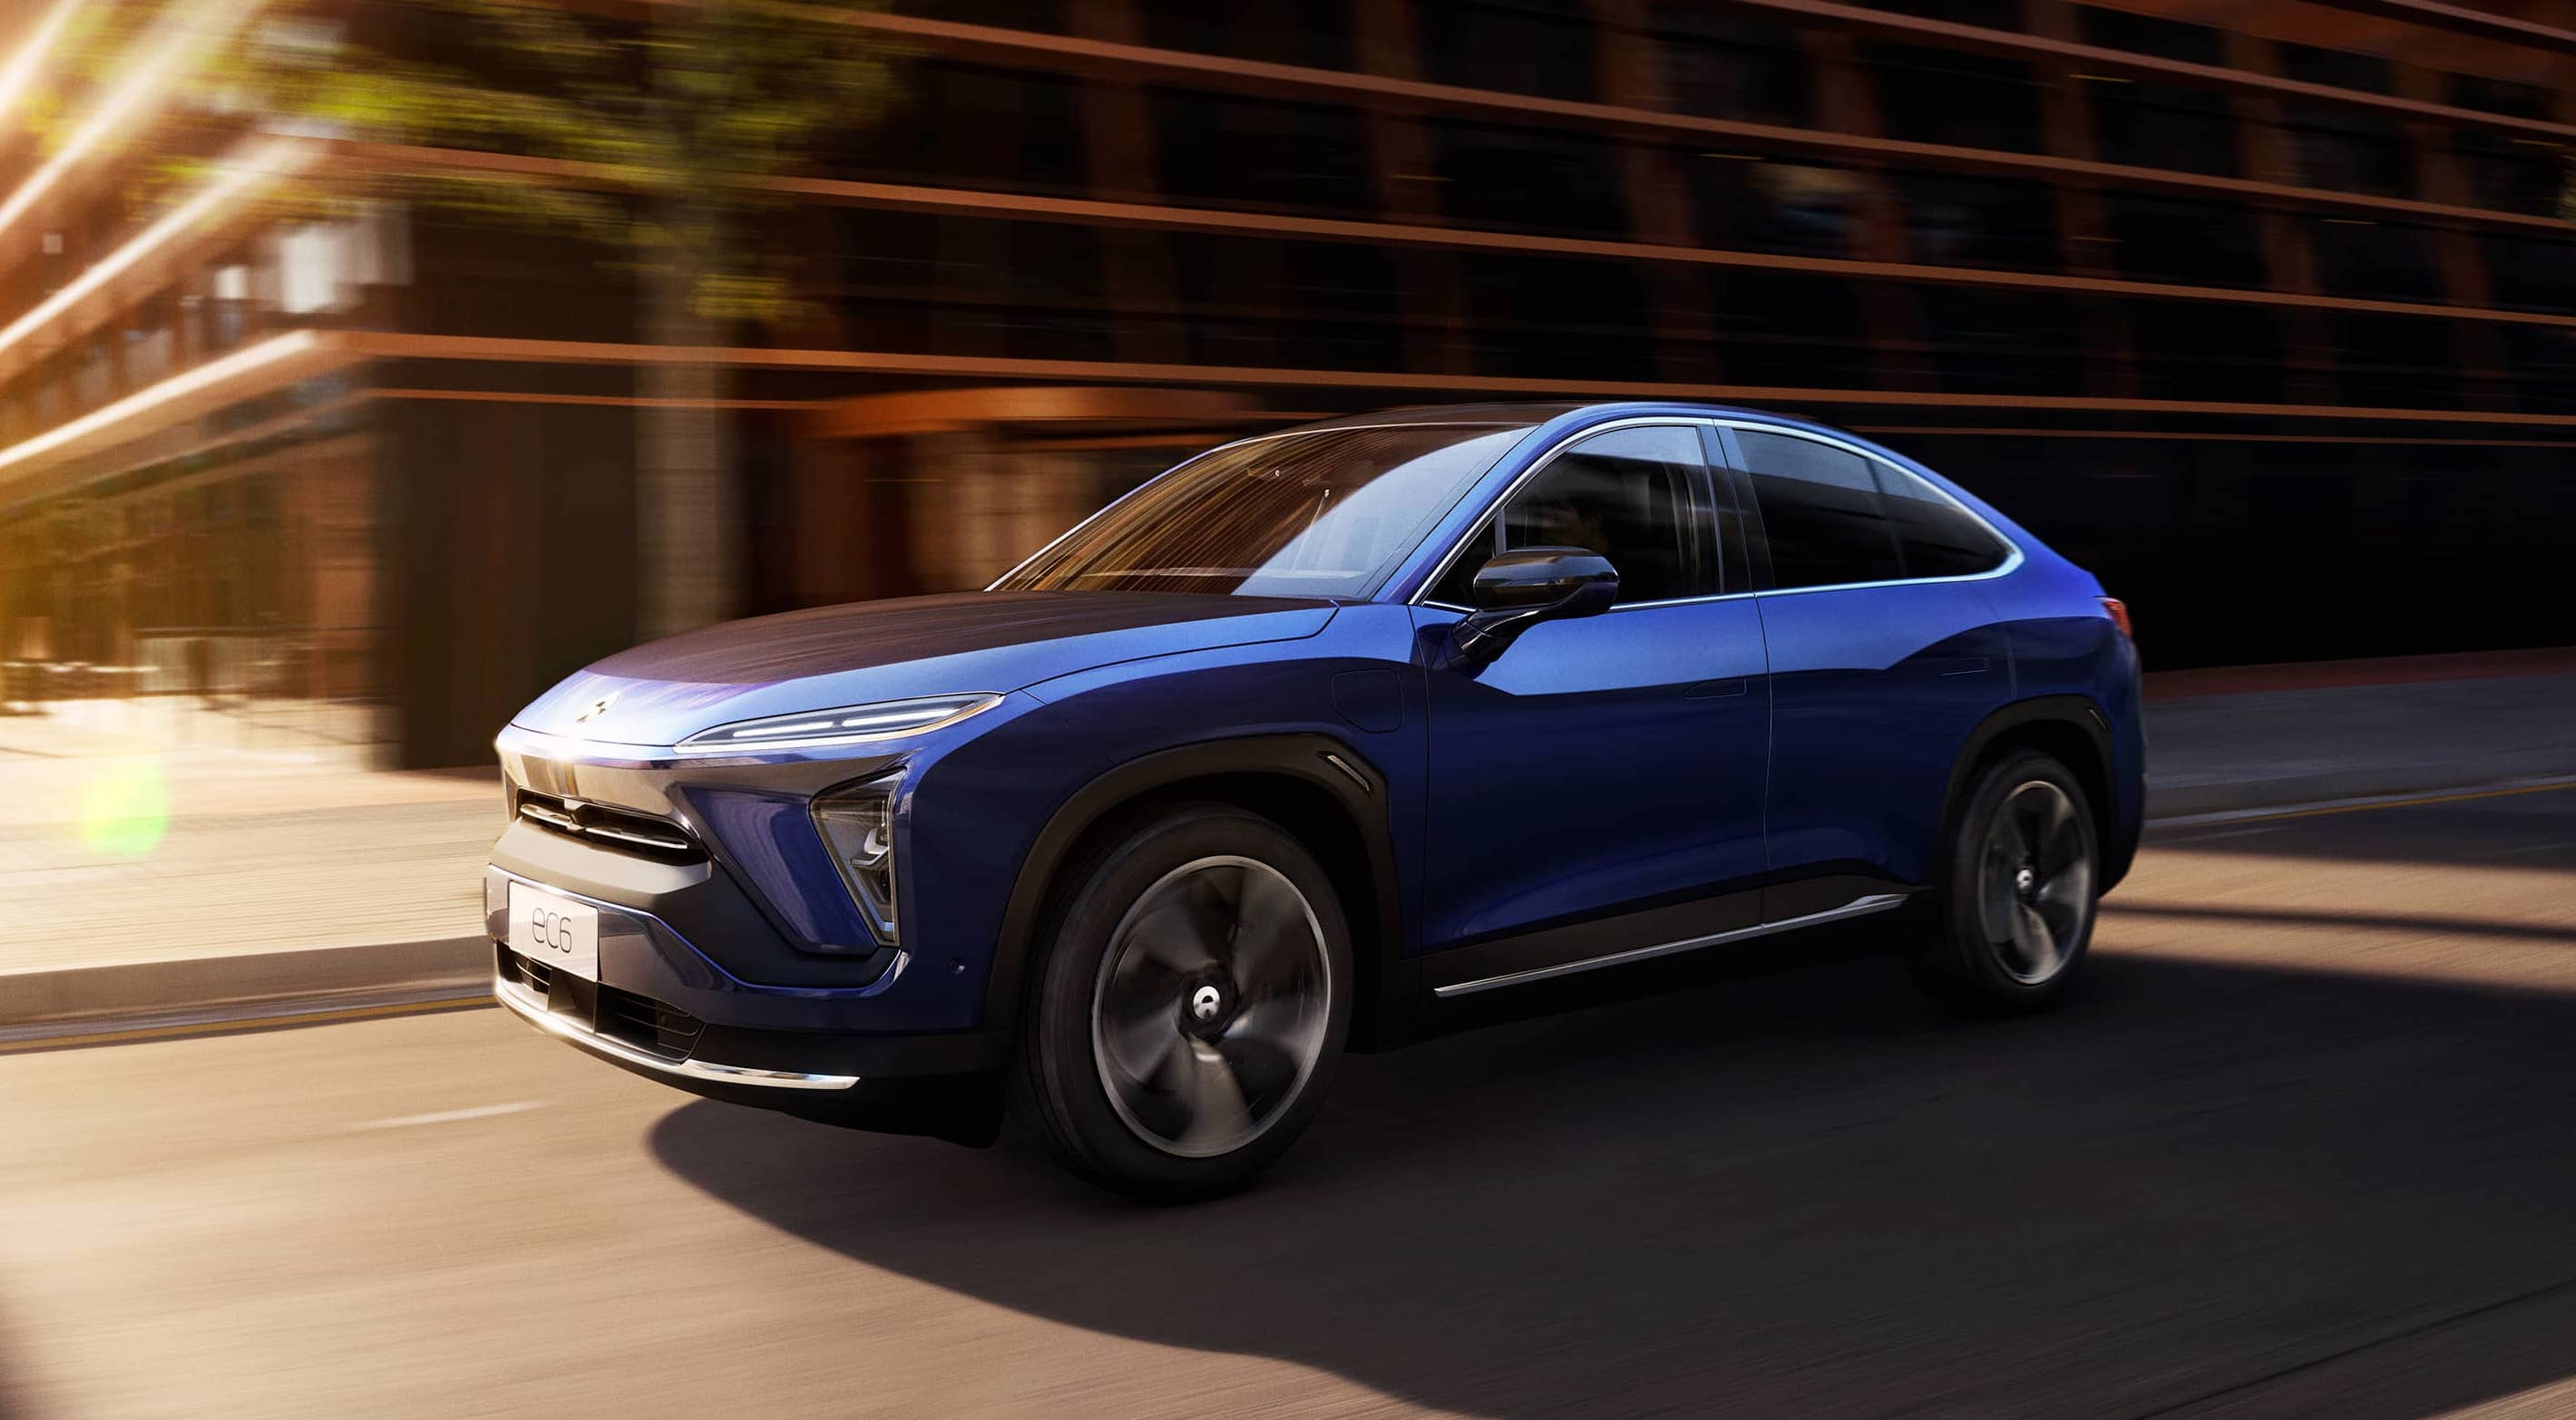 Why Nio Stock Is Down Today Despite A Good Sales Report The Motley Fool